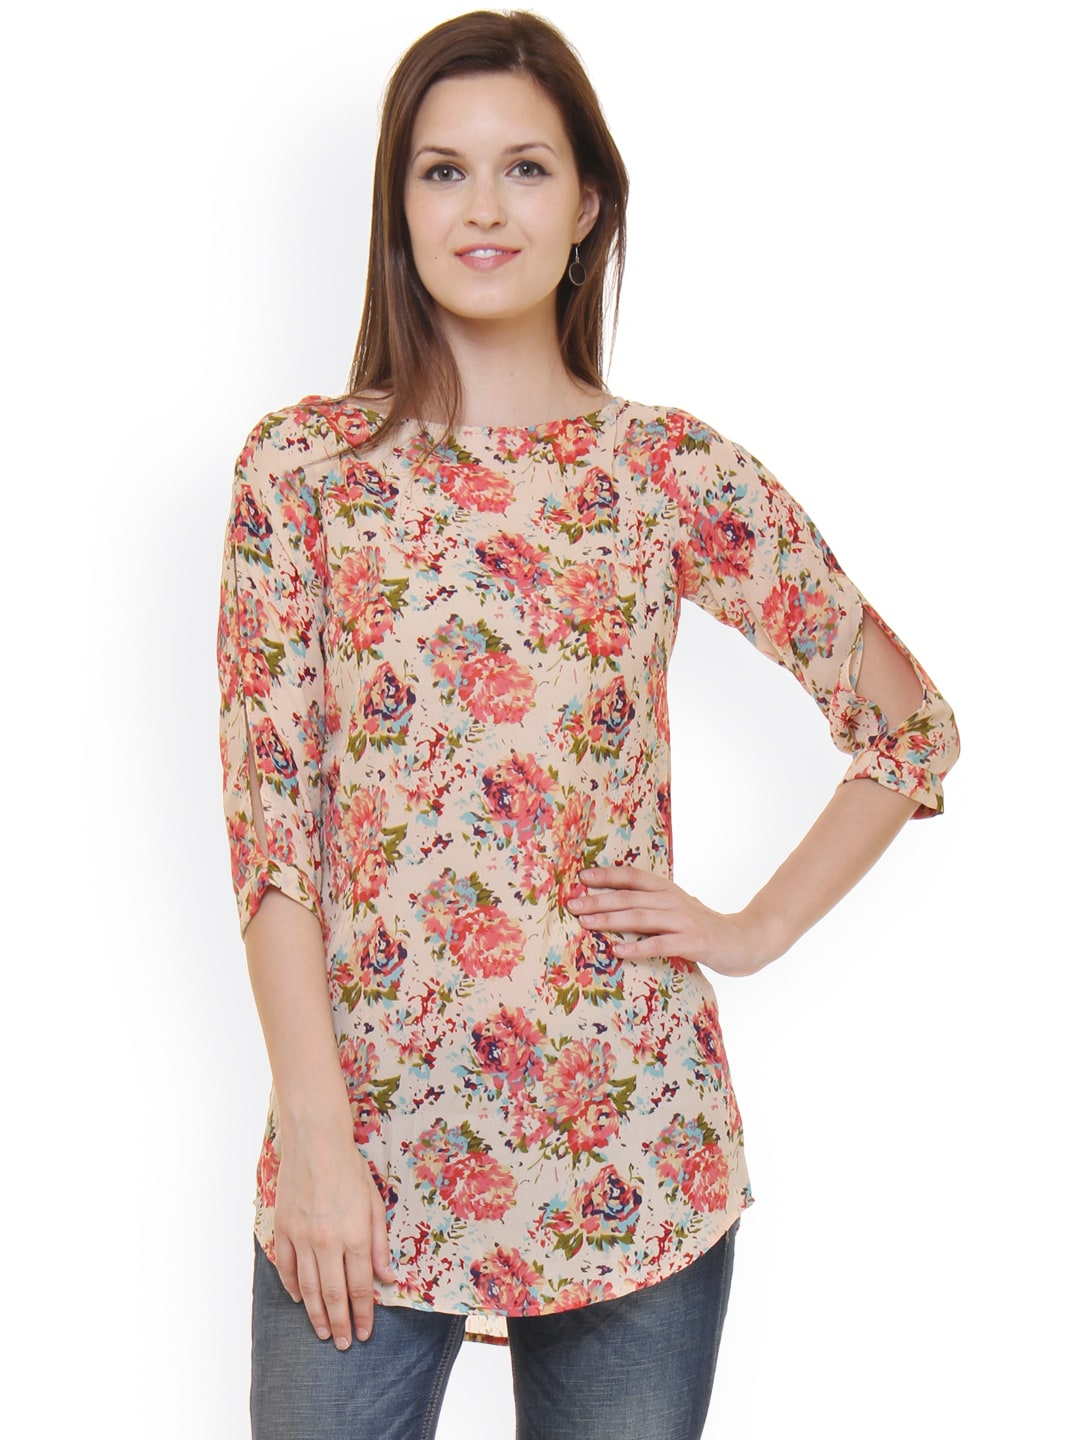 aa6fb01f617842 Tunics for Women - Buy Tunic Tops For Women Online in India